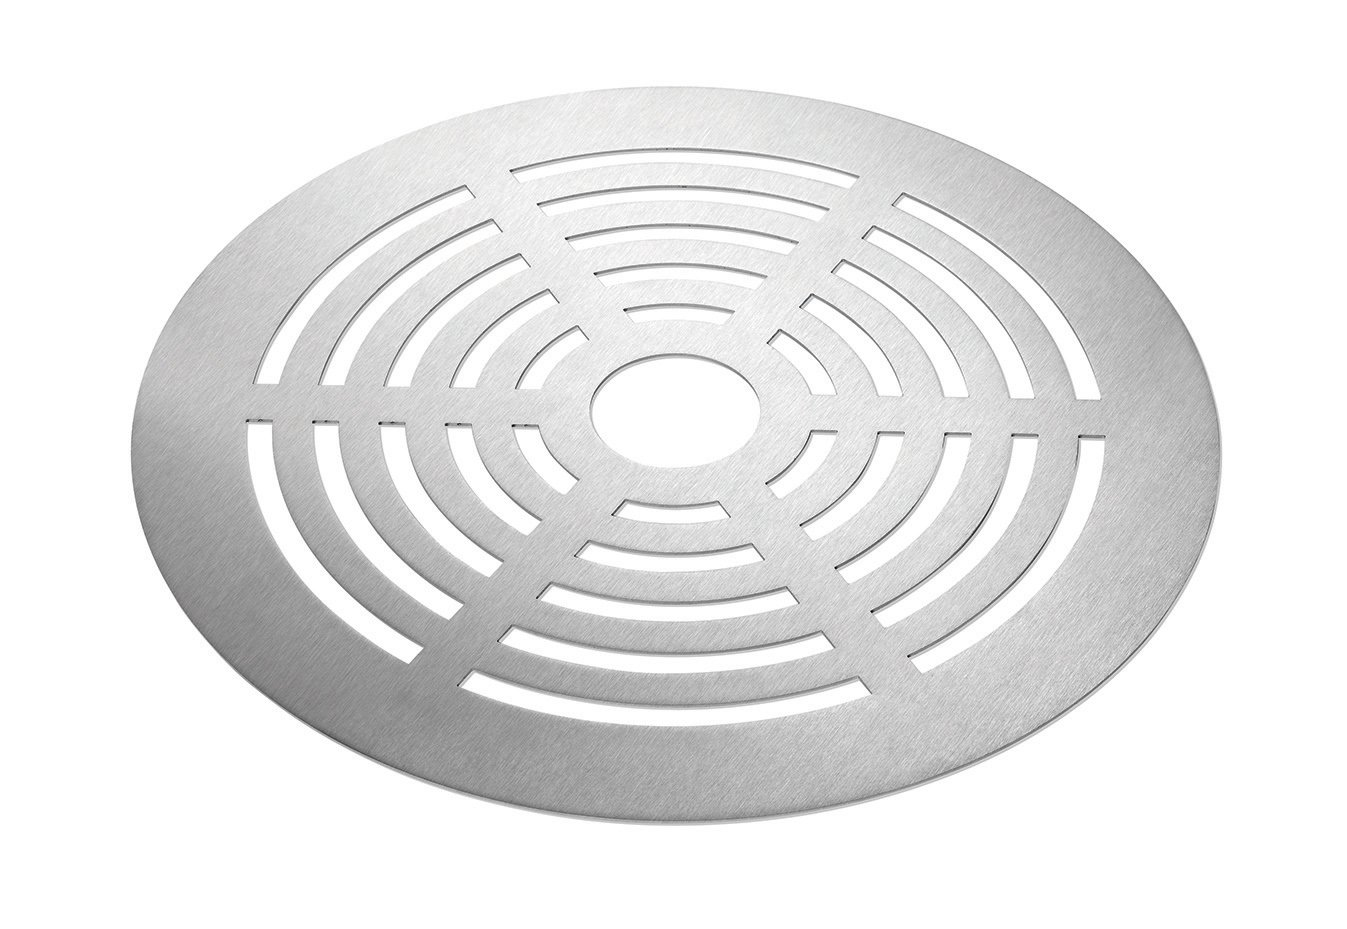 Rosseto SM138 Round Stainless Steel Brushed Grill Top, 16-Inch